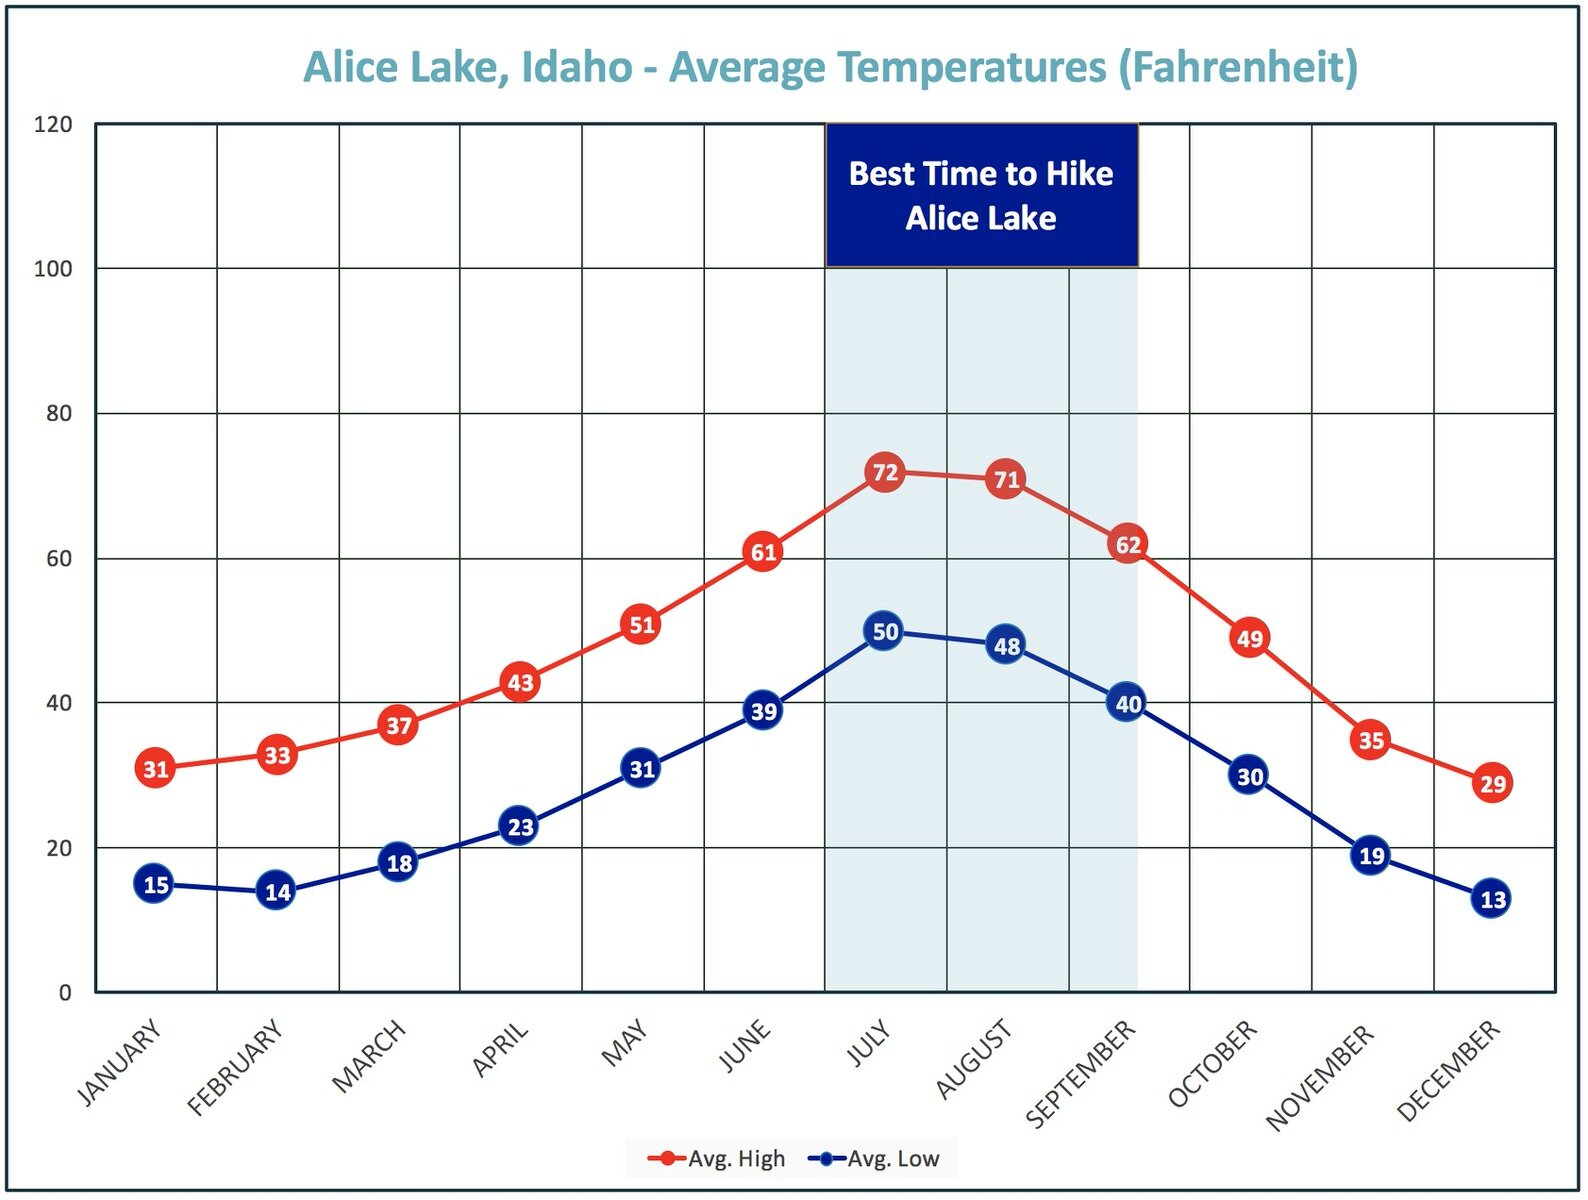 Best time to go to Alice Lake based on temperatures.